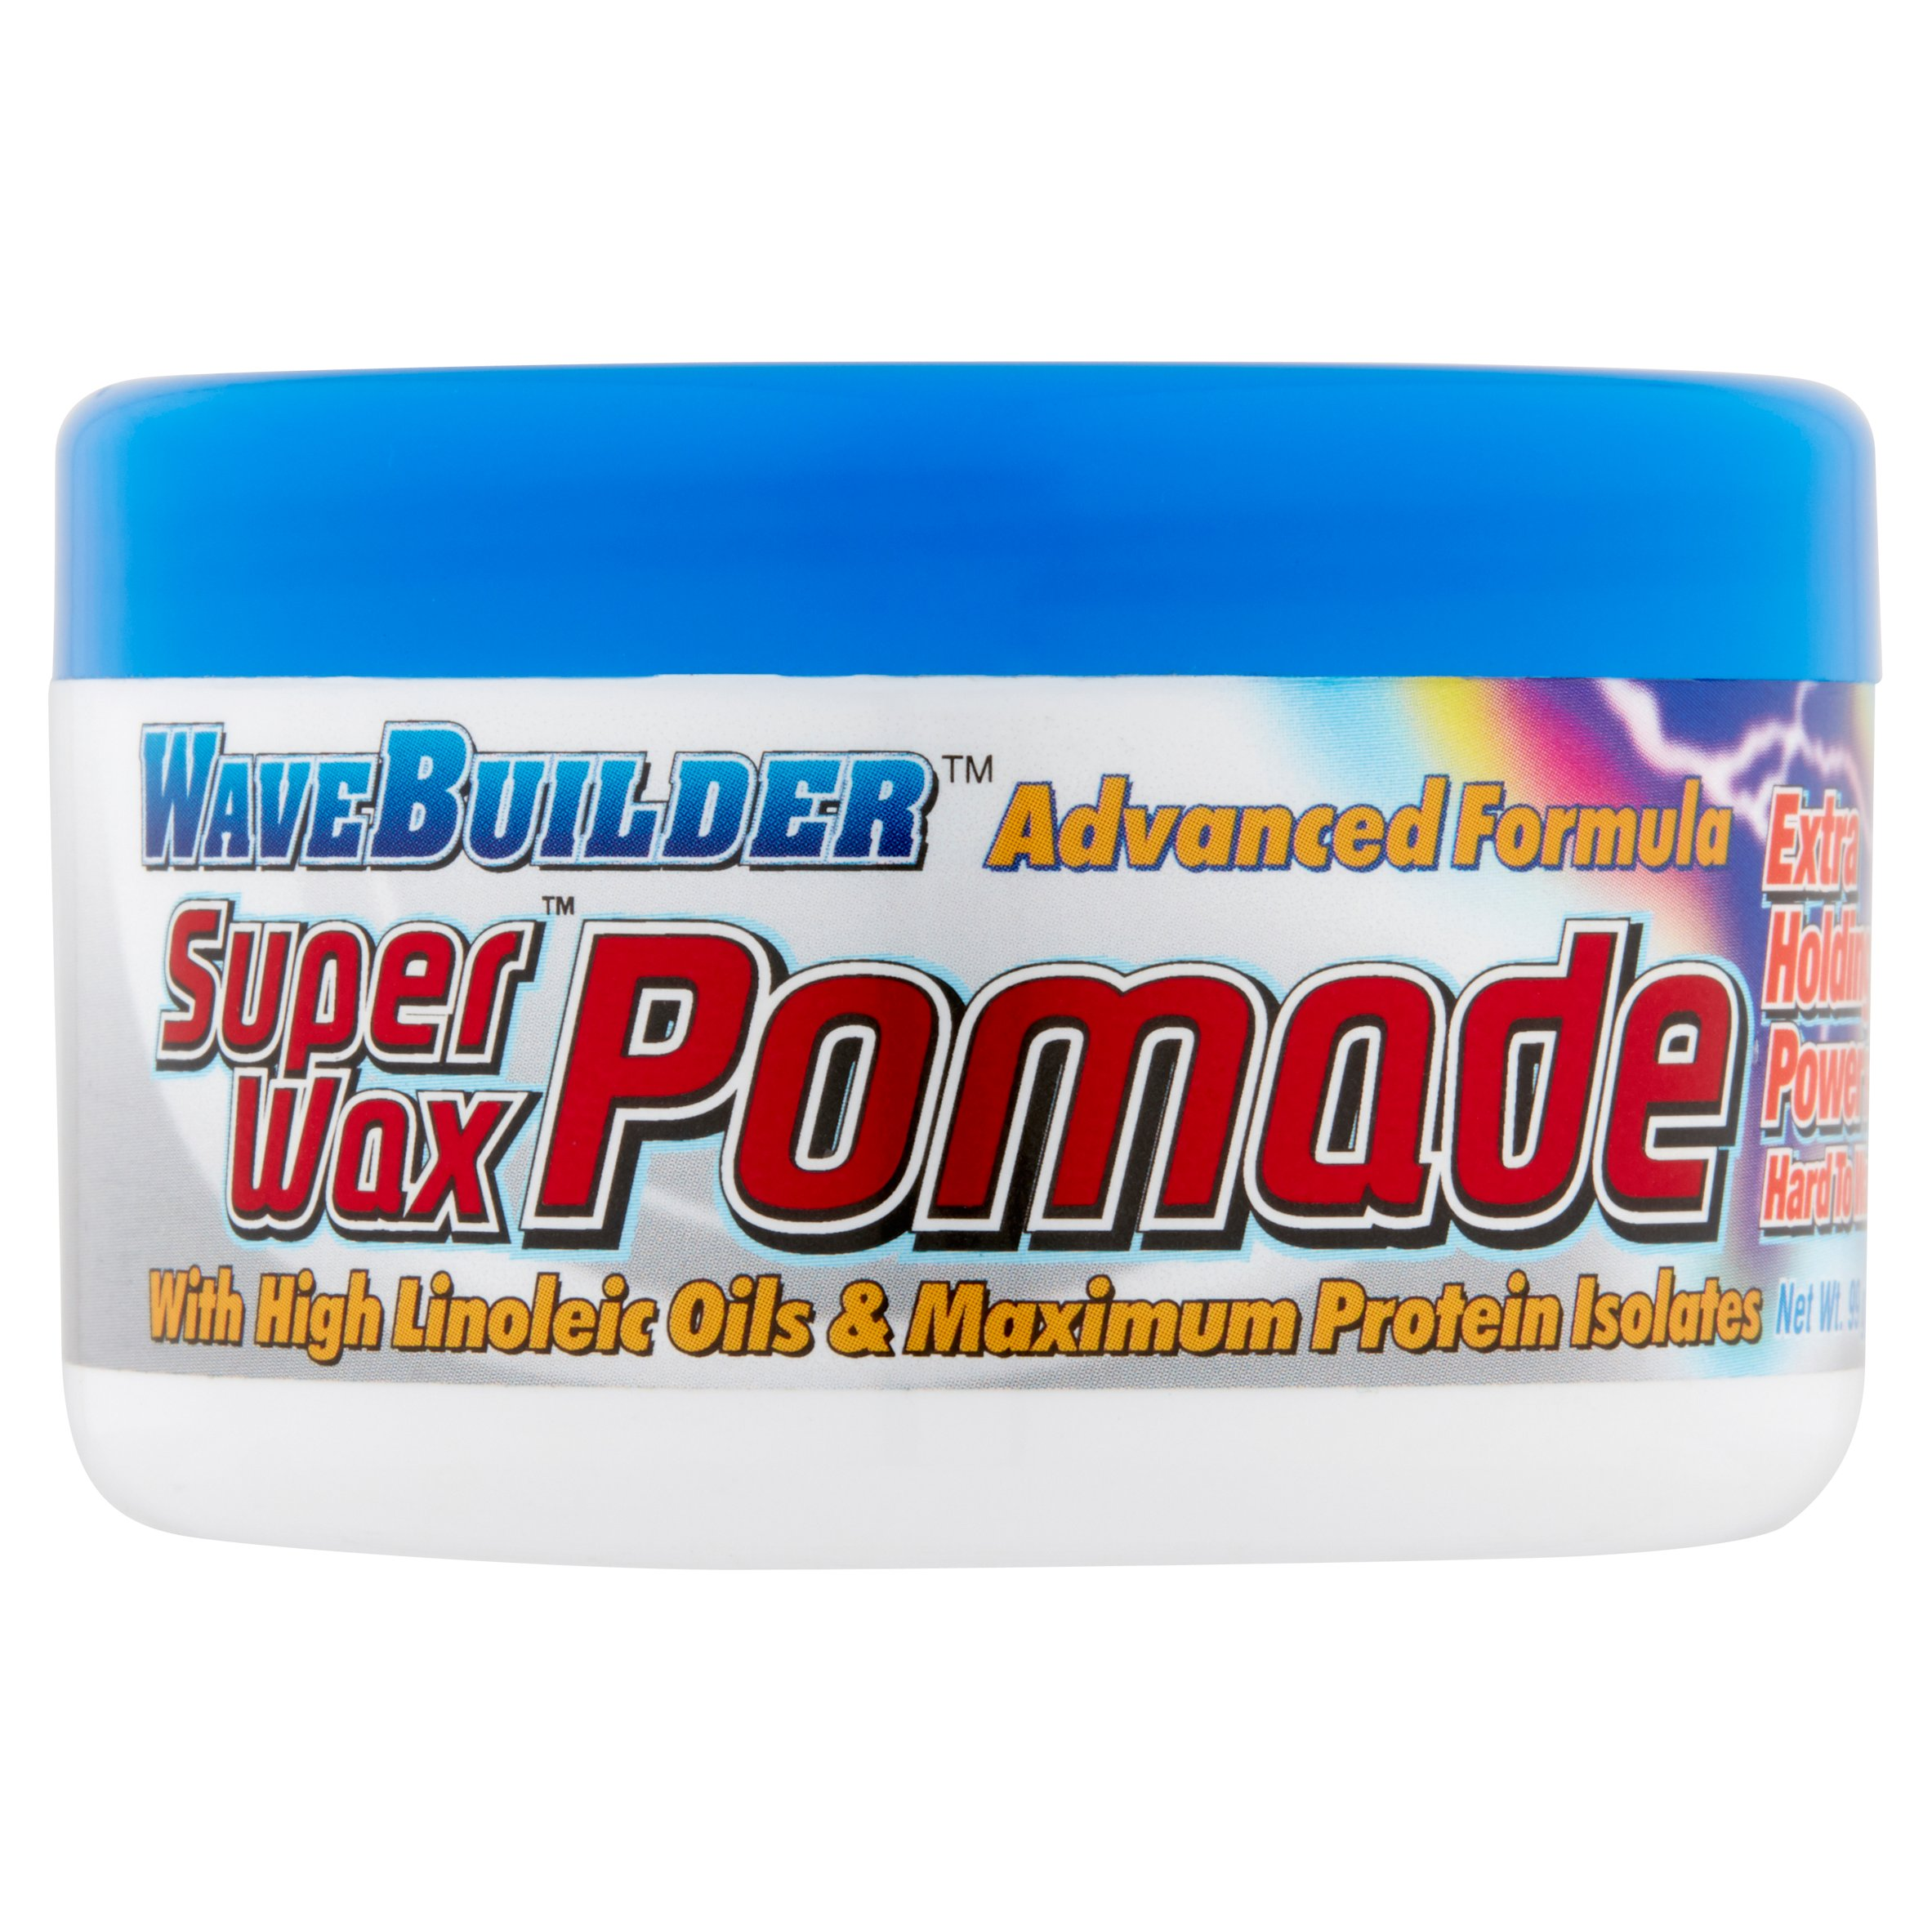 WaveBuilder Advanced Formula Super Wax Pomade, 3.5 oz